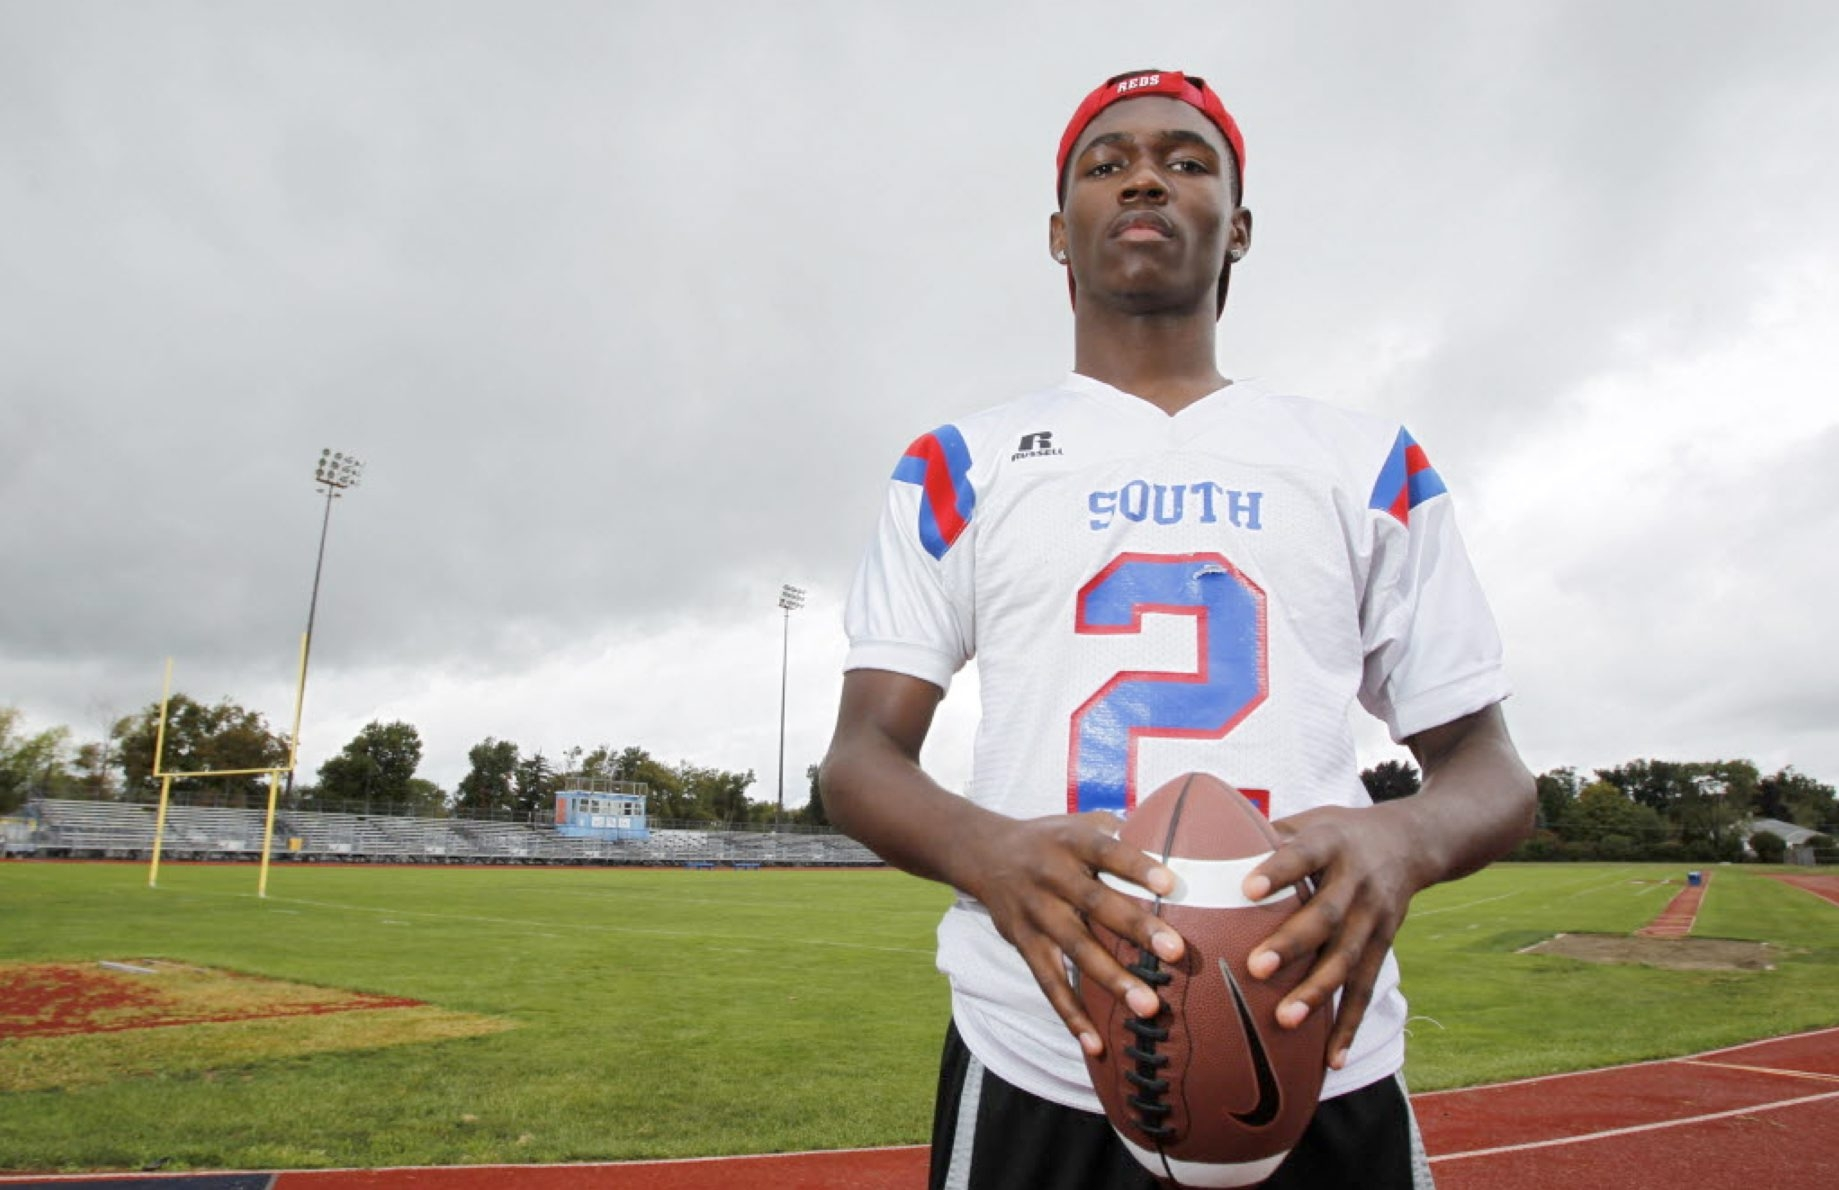 Williamsville South High grad Chaquiel Nettles is trying to earn a place on the Robert Morris U football team after some soccer moms in Amherst embraced the East Side teen and saw to it that he got his chance.